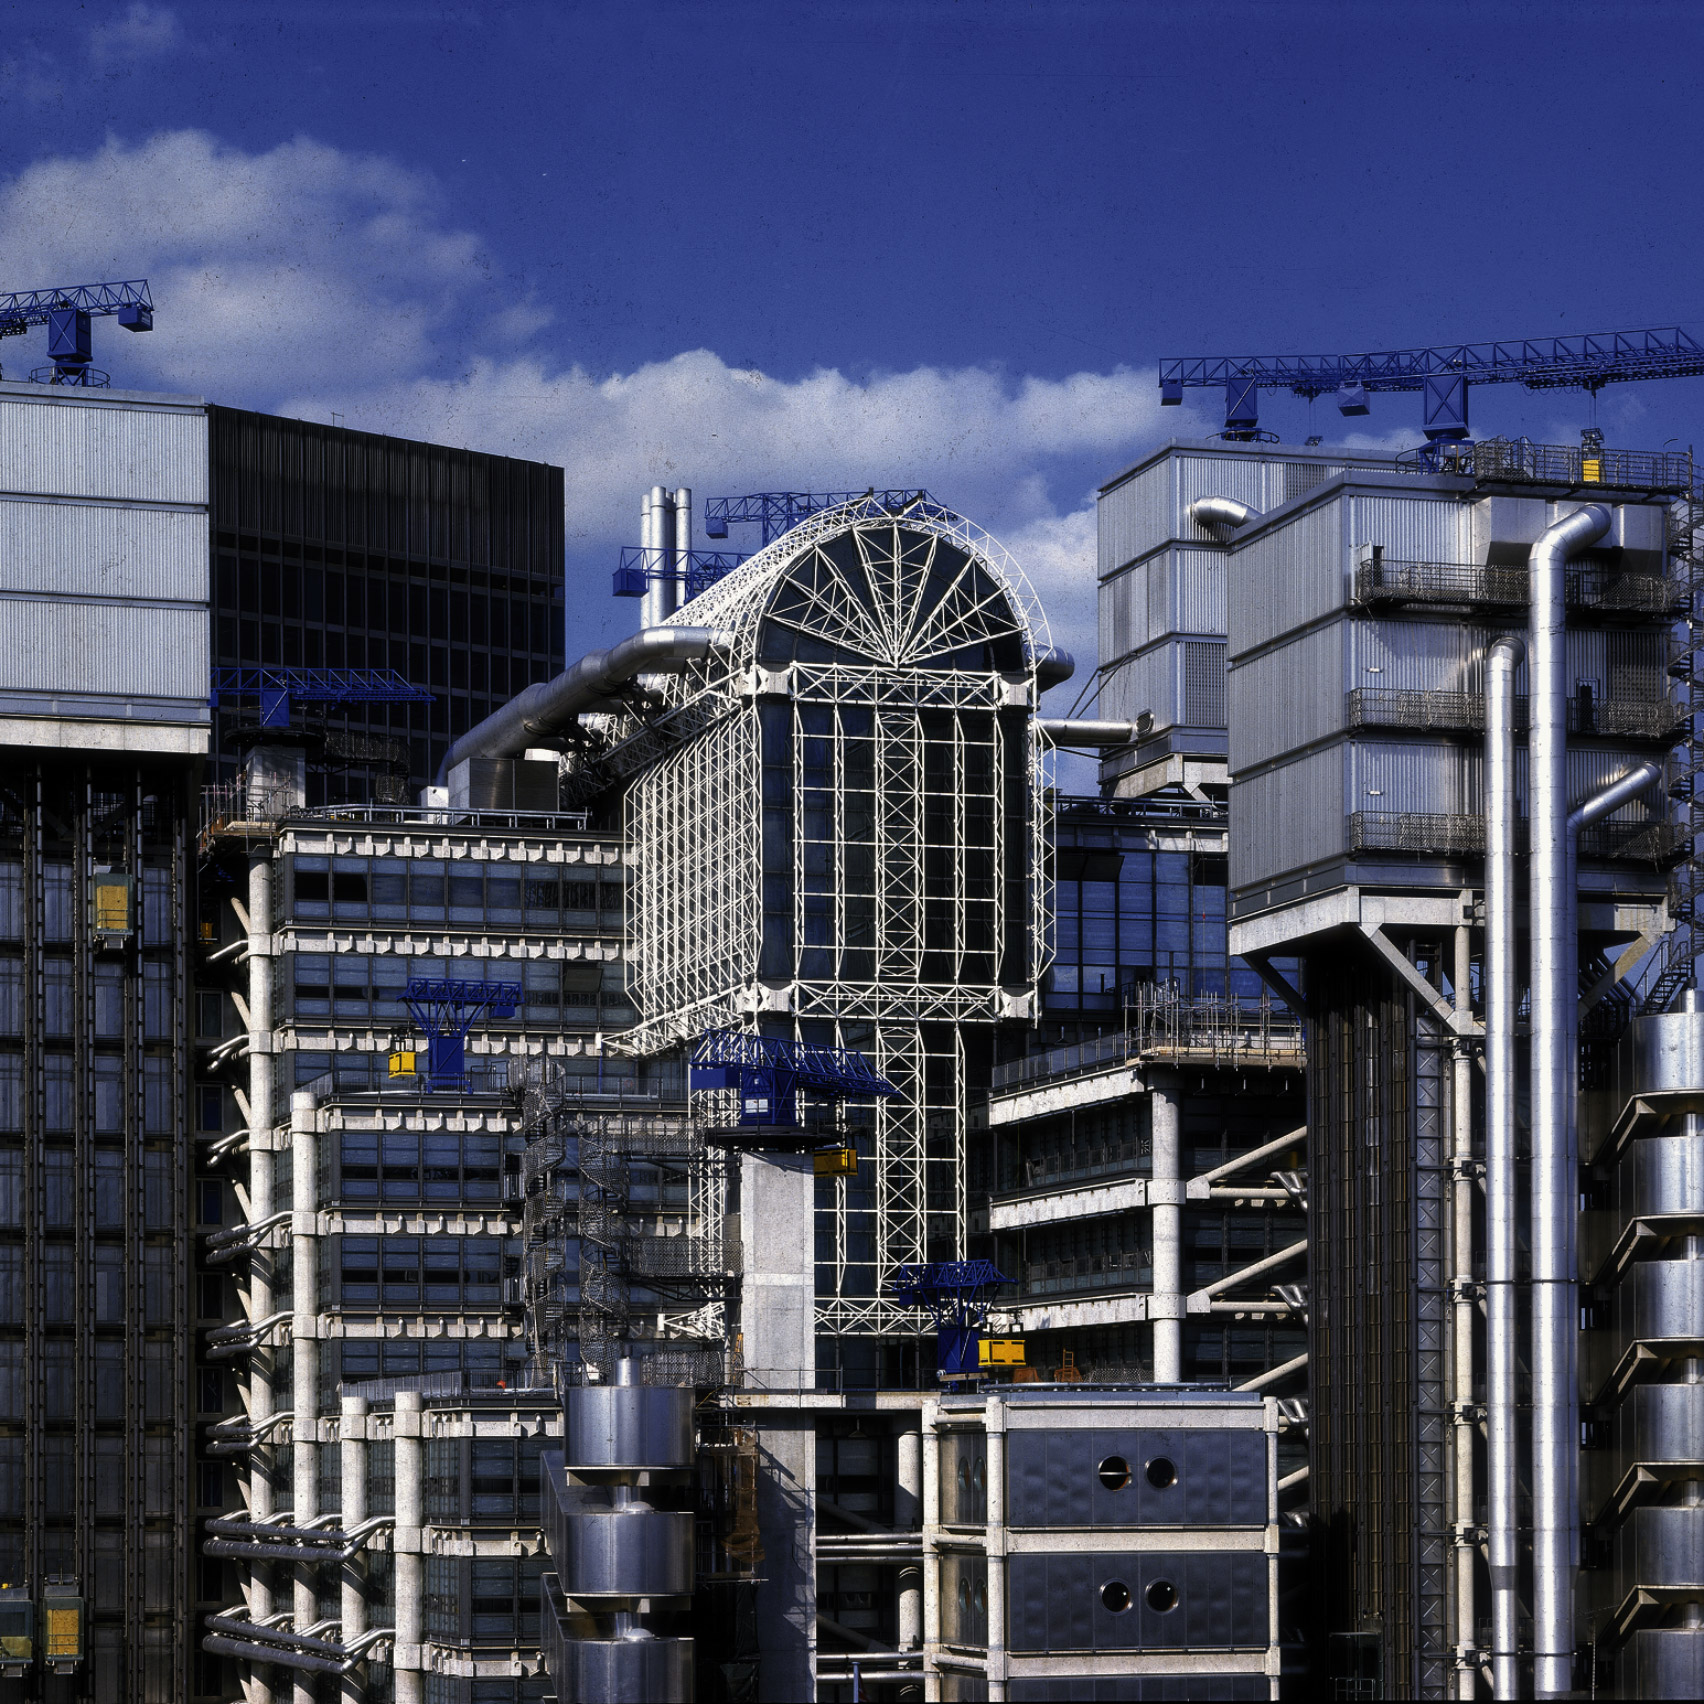 High-tech buildings: The Lloyd's building in London by Richard Rogers and Partners (now Rogers Stirk Harbour + Partners)